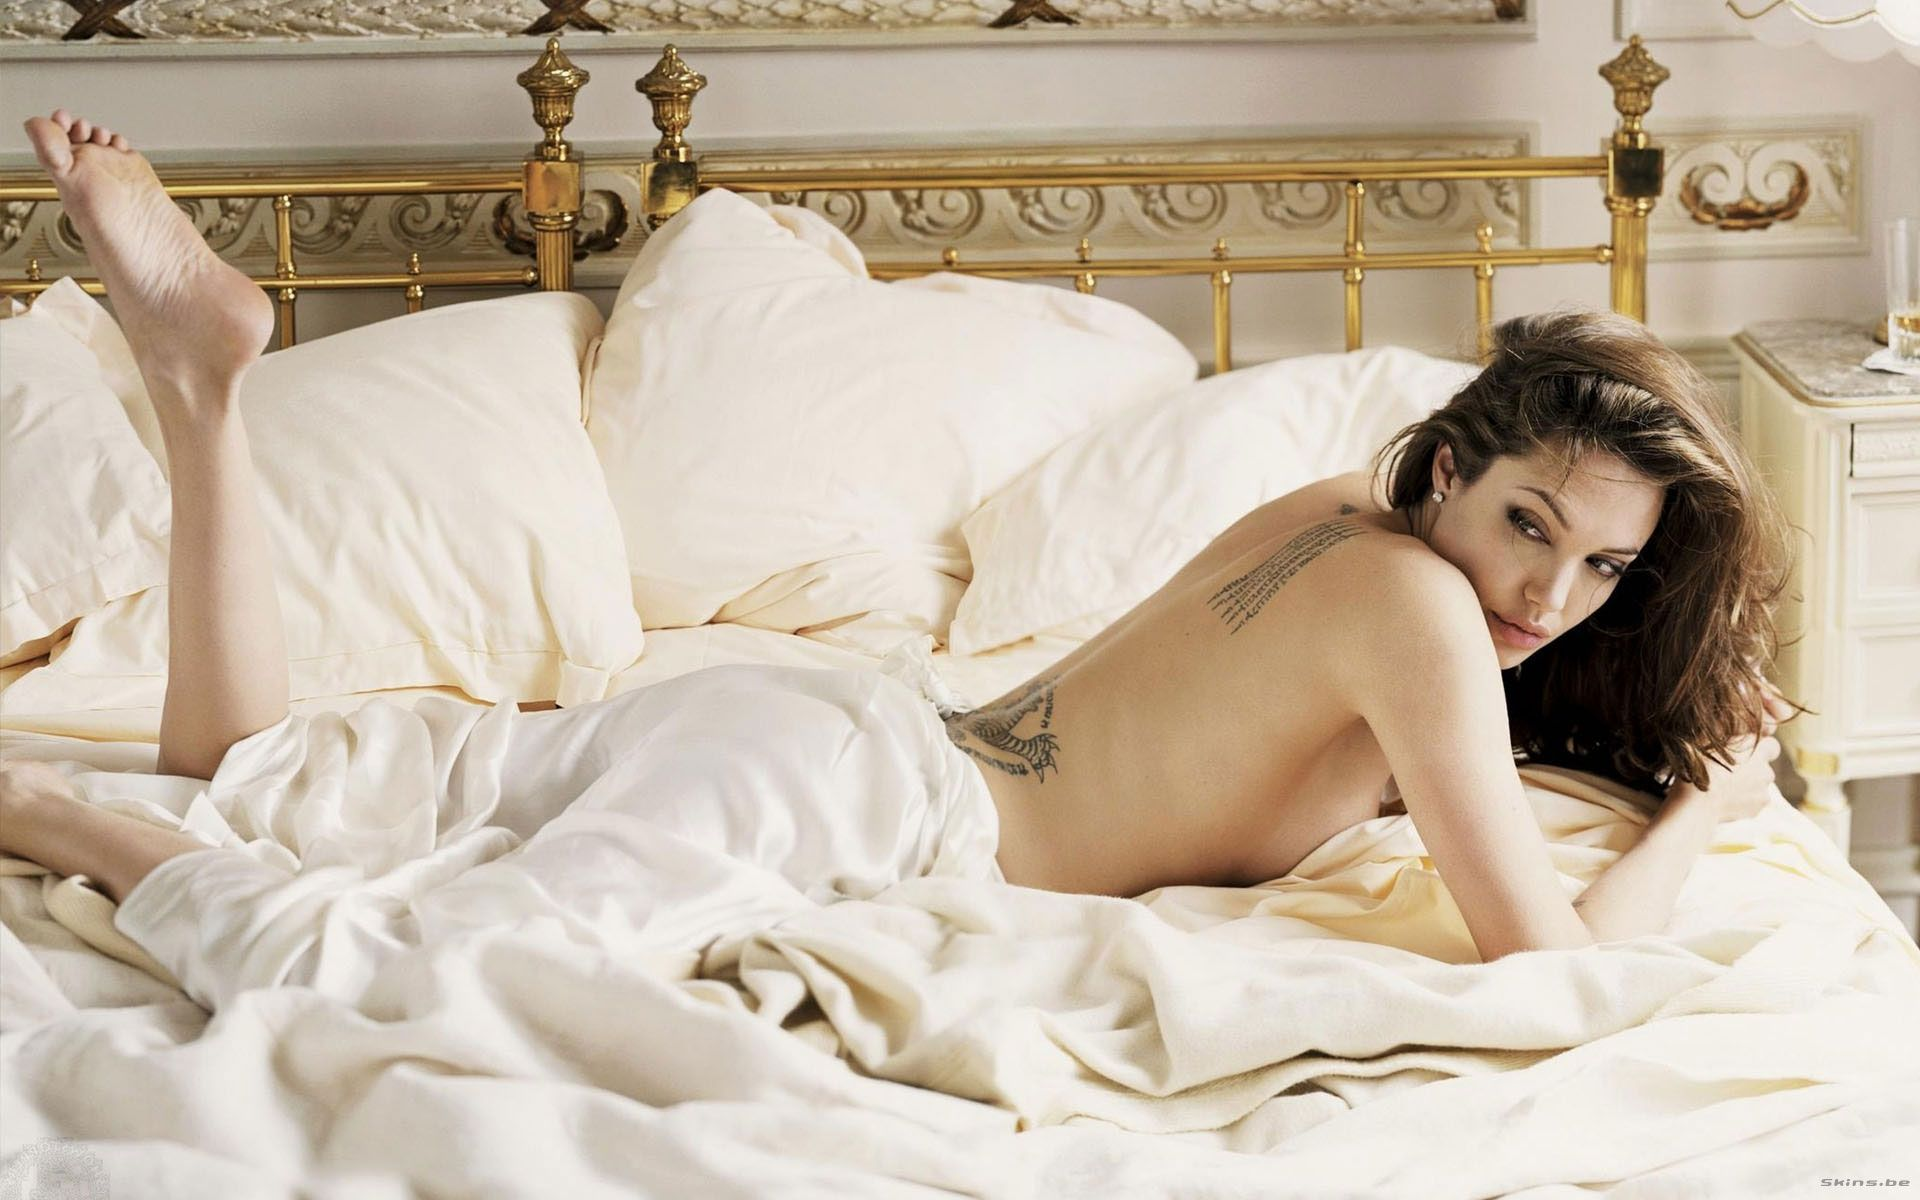 12 Actresses Who Enjoy Getting Naked